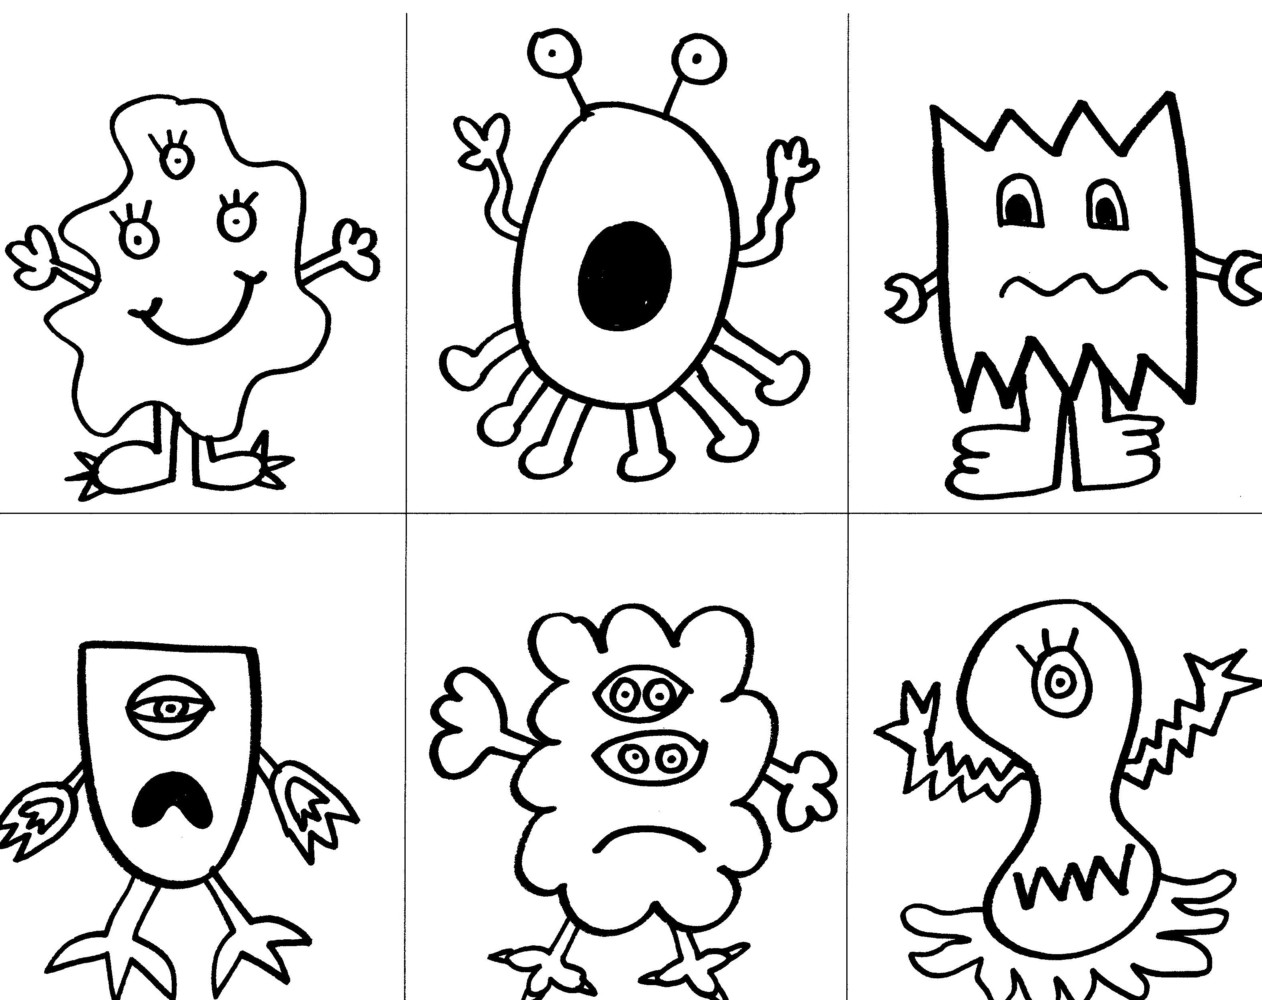 Completed Monsters Coloring Page